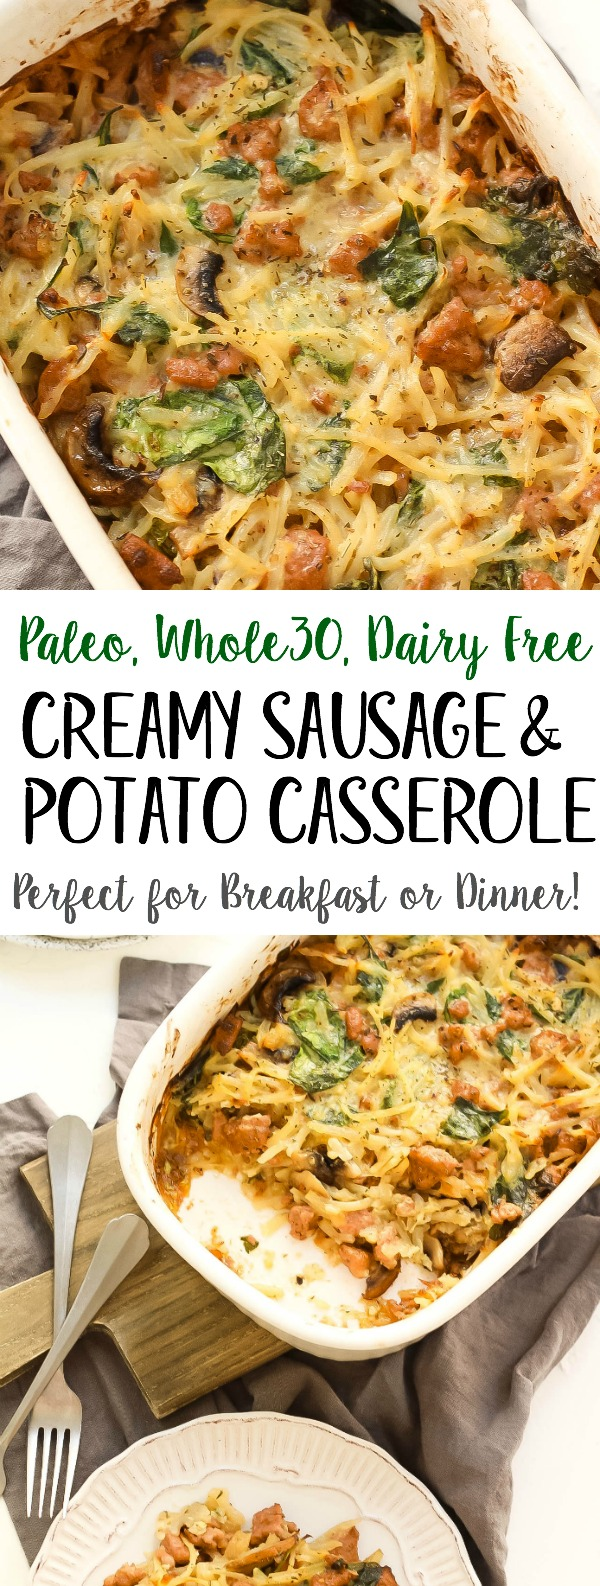 Creamy Sausage & Potato Whole30 Casserole (Paleo + GF